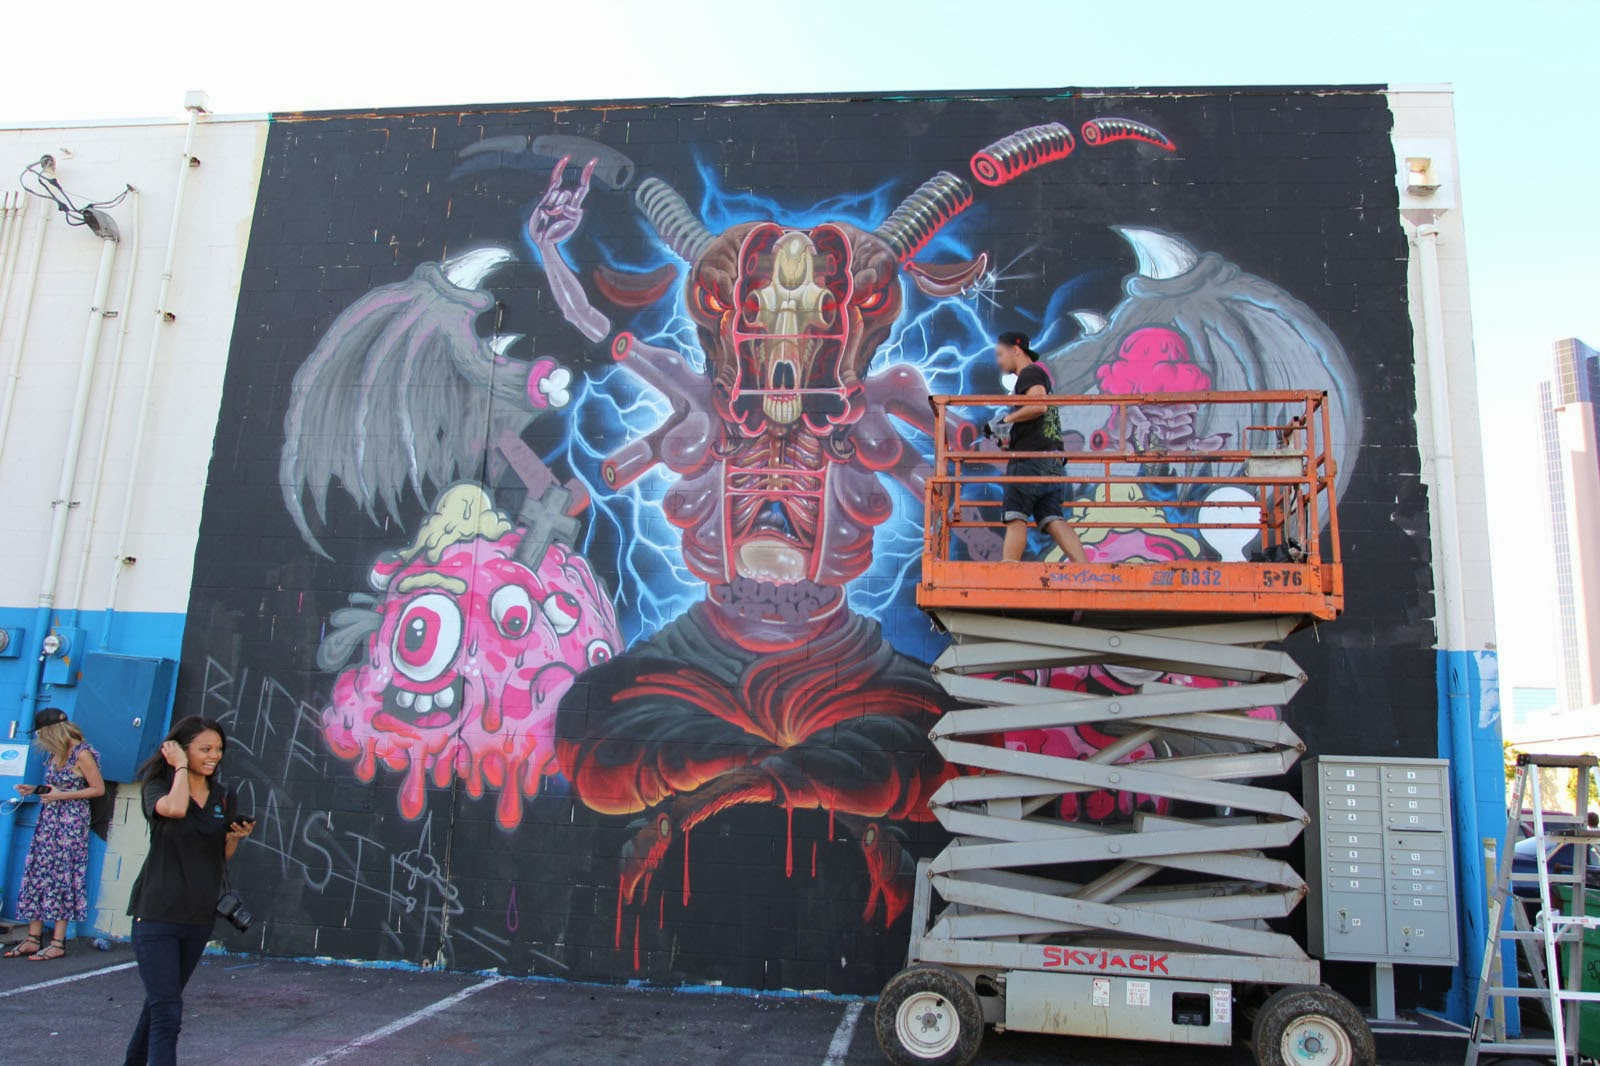 Vienna-based Street Artist Nychos is back in Hawaii for POW! WOW! 2014 and this time he teamed up with the legendary Buff Monster to work on this new mural. 1